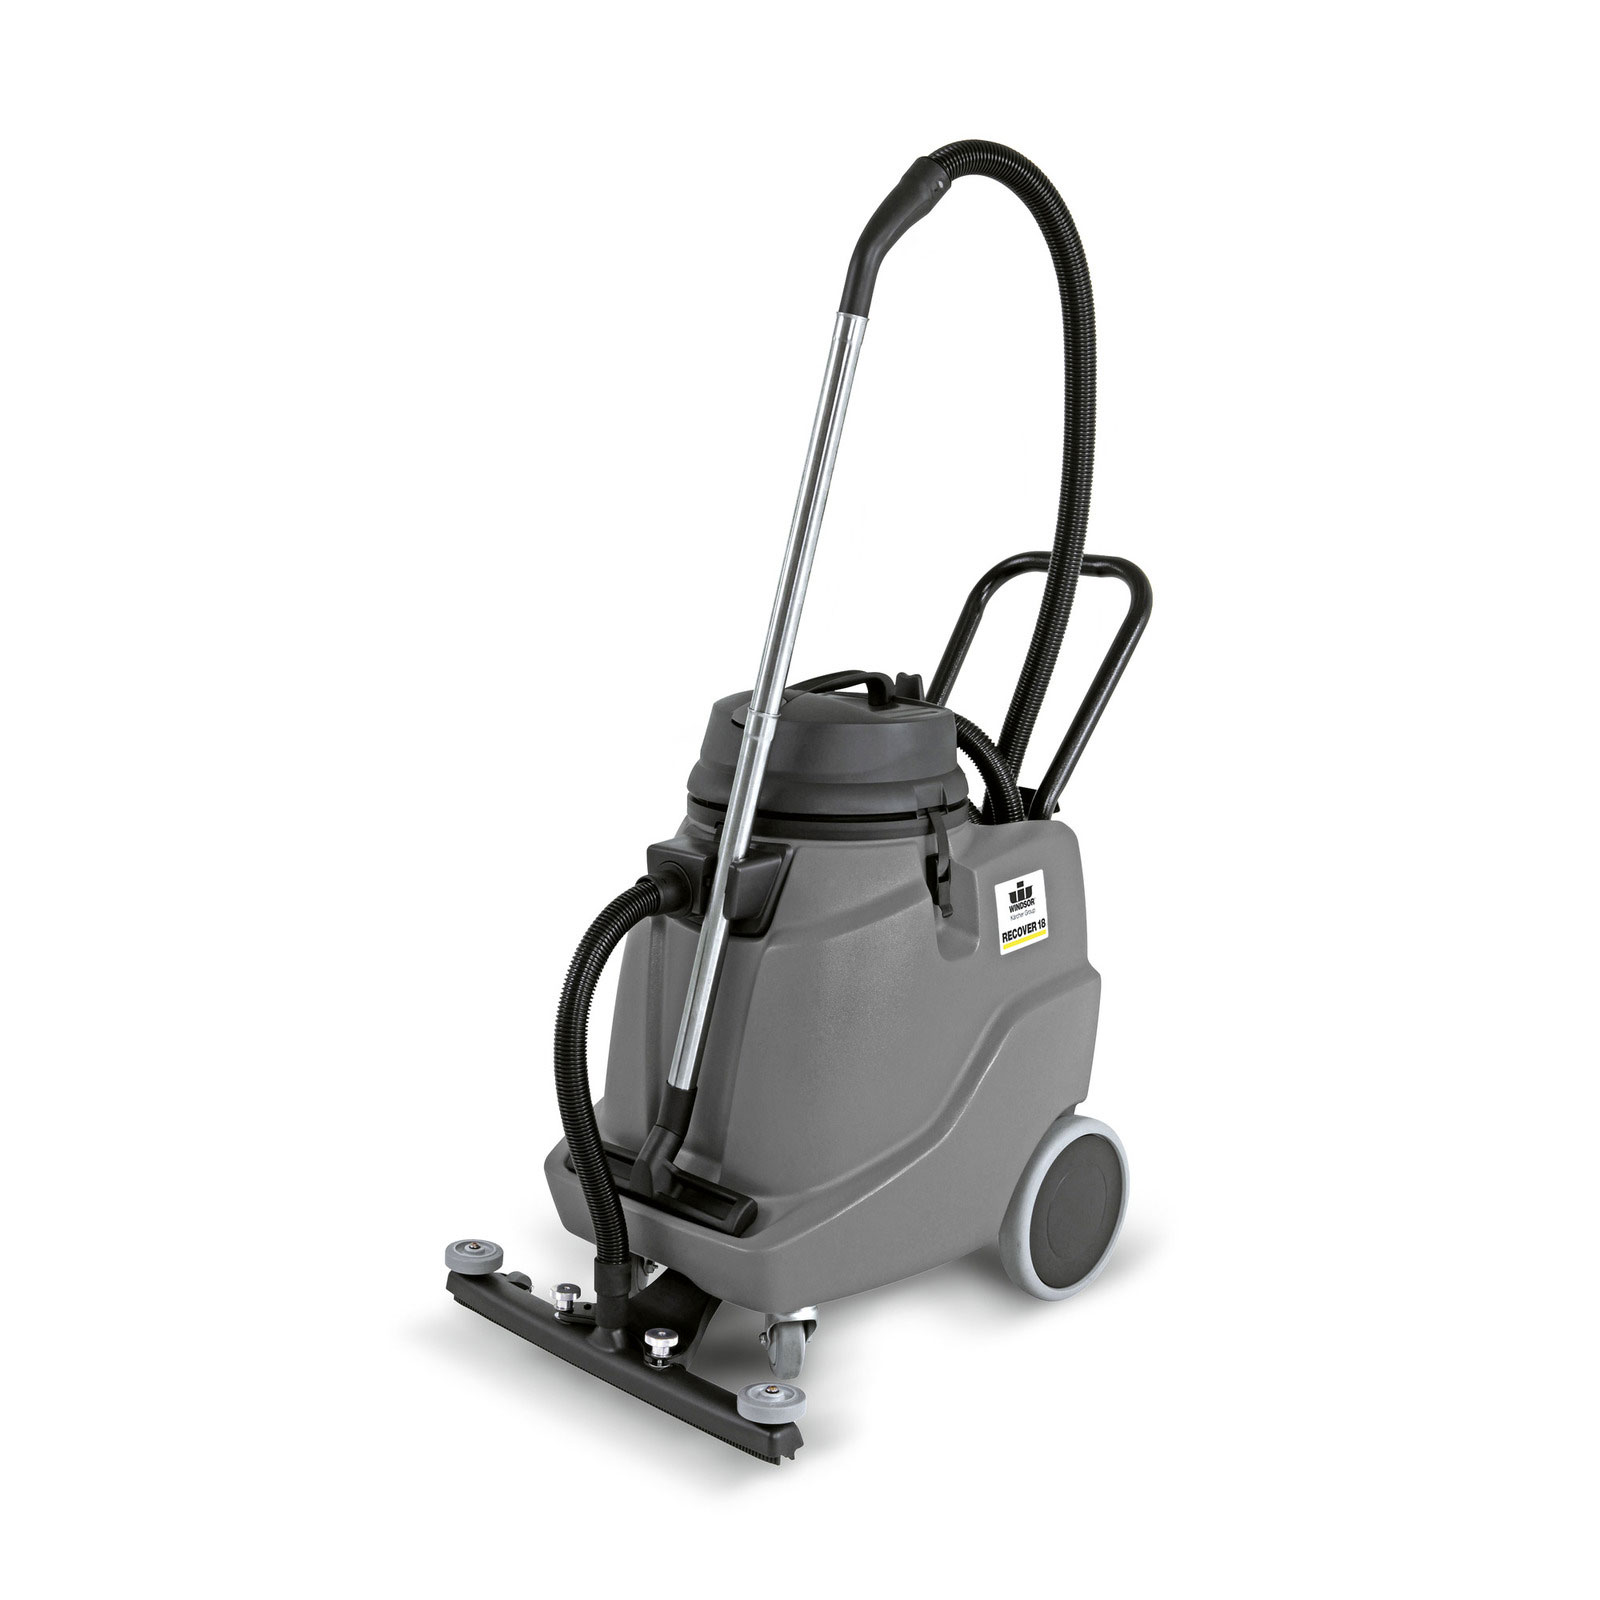 Karcher NT 68/1 Windsor Recover 18 gal Wet / Dry Vacuum 1.013-017.0 w/ with front mounted squeegee, hose and wand  1.103-494.0